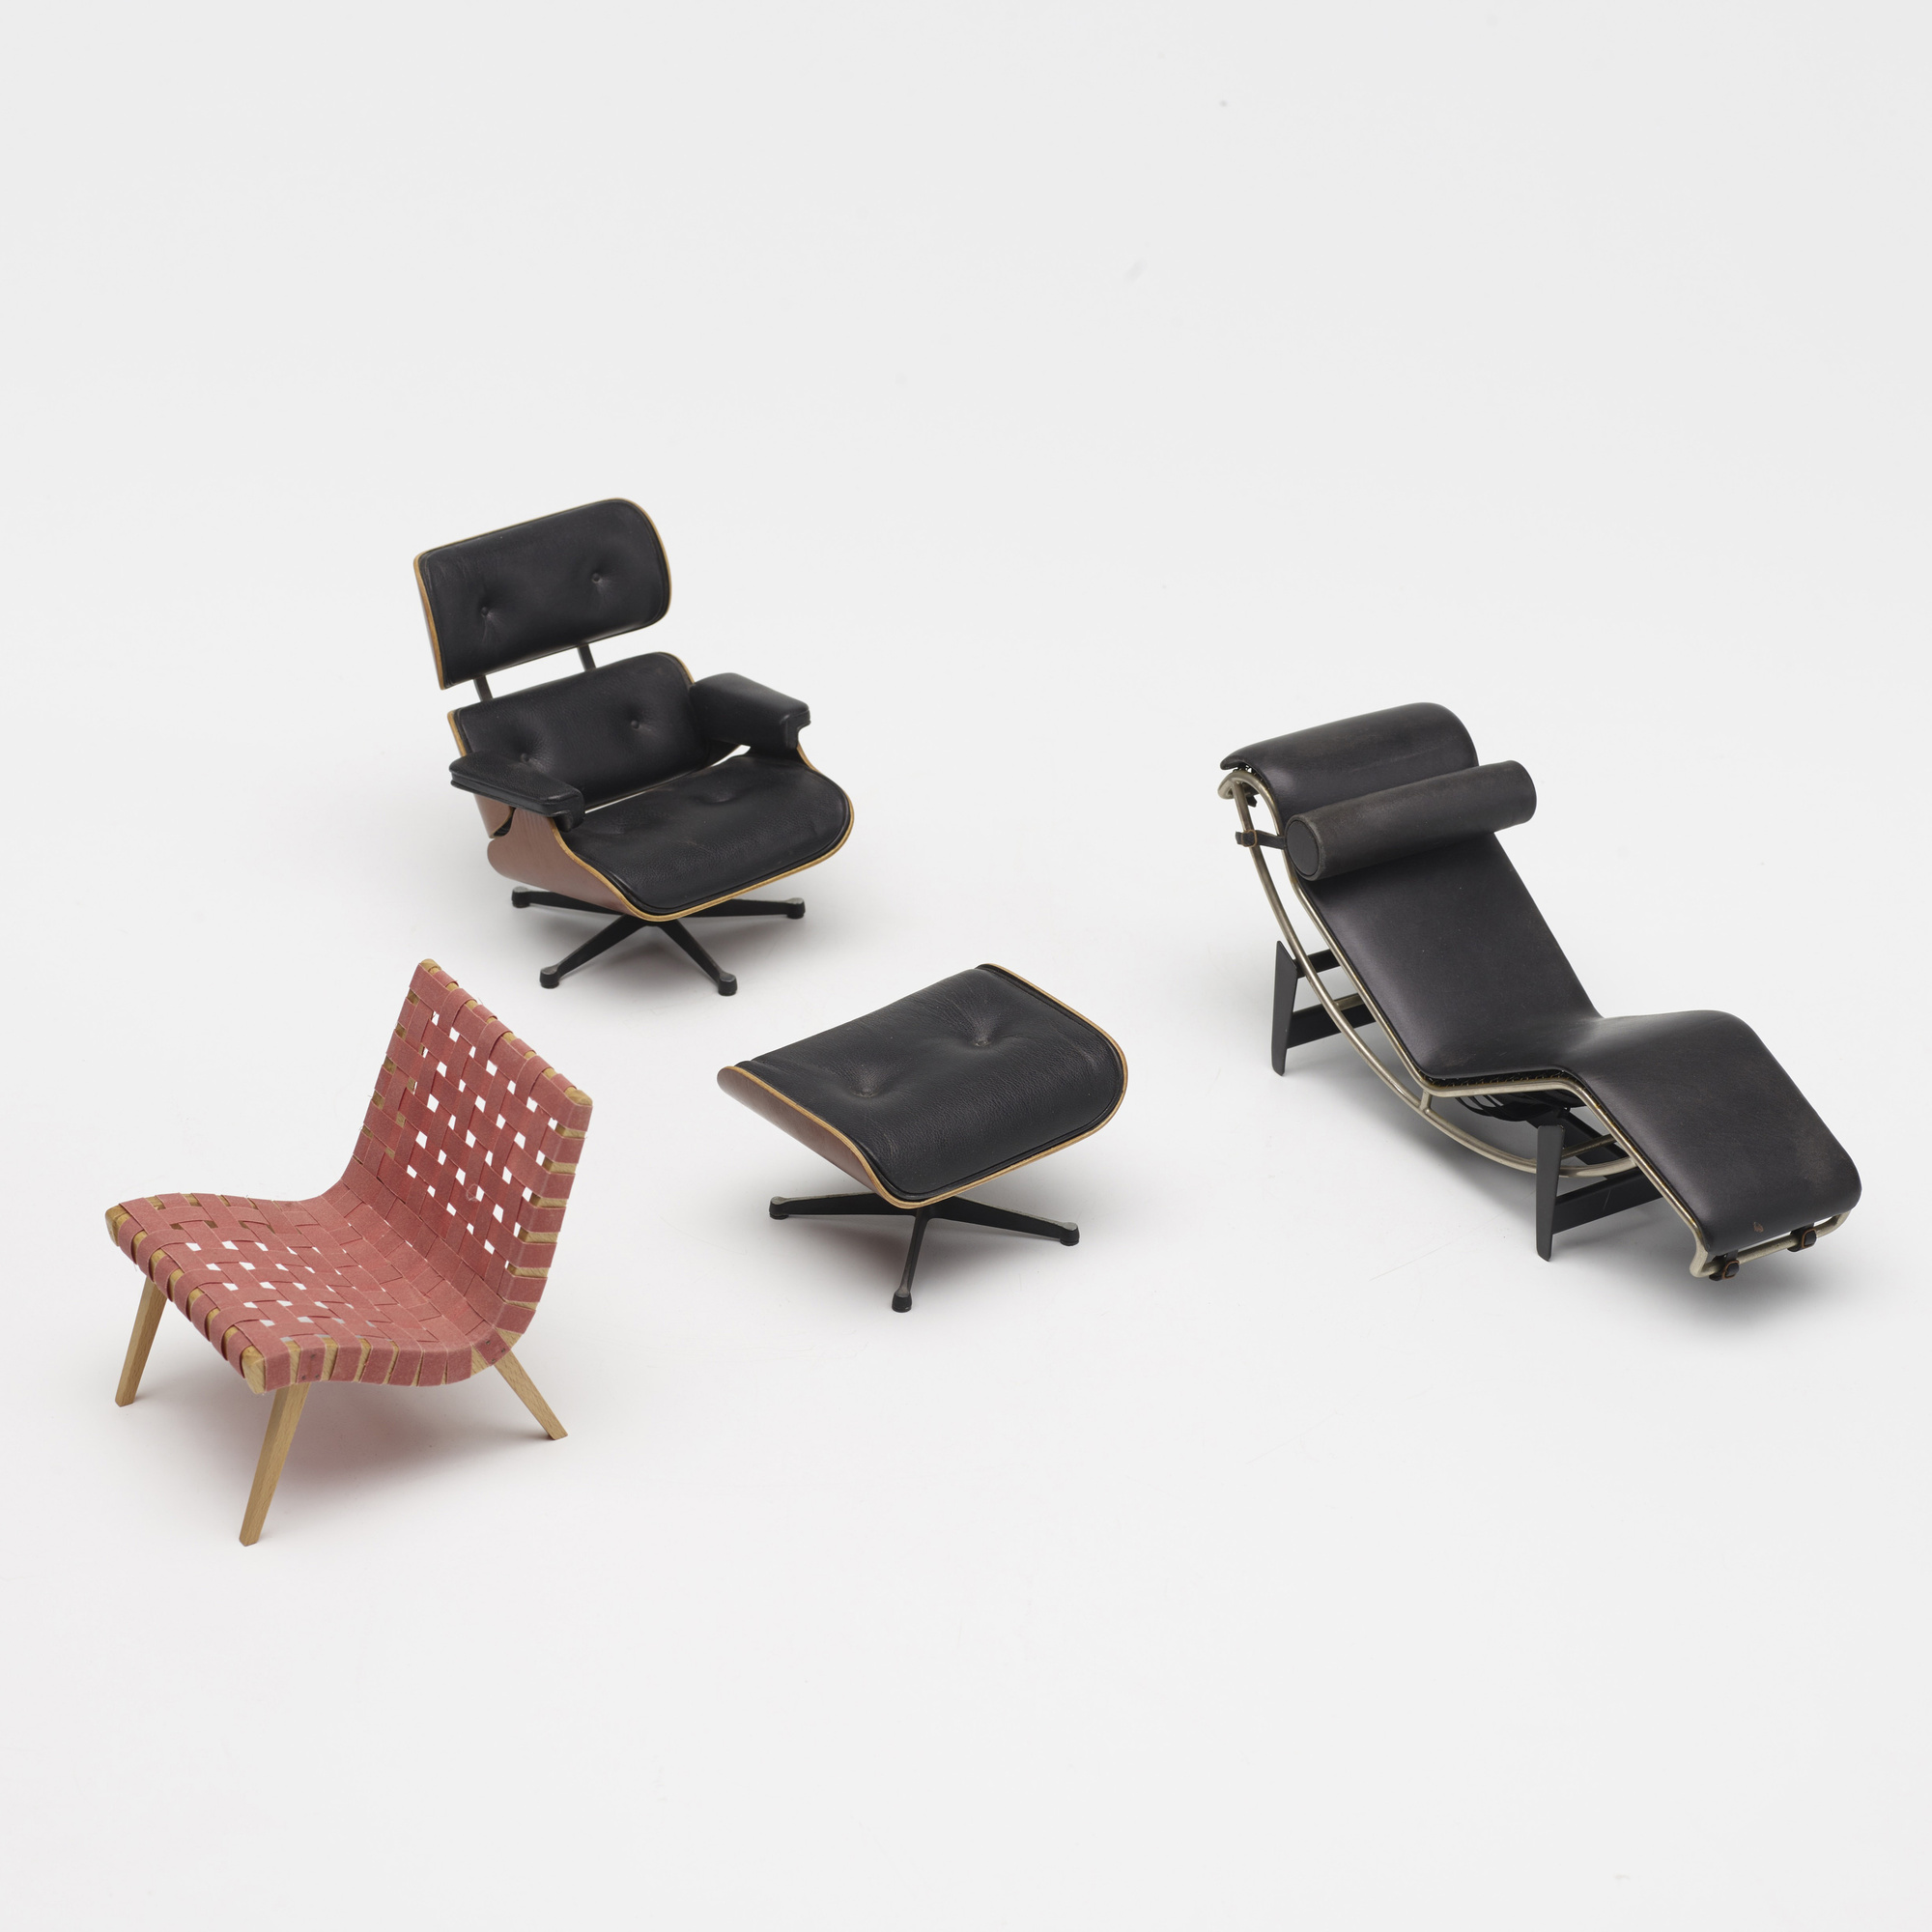 776: Vitra / collection of three miniature chairs (3 of 3)